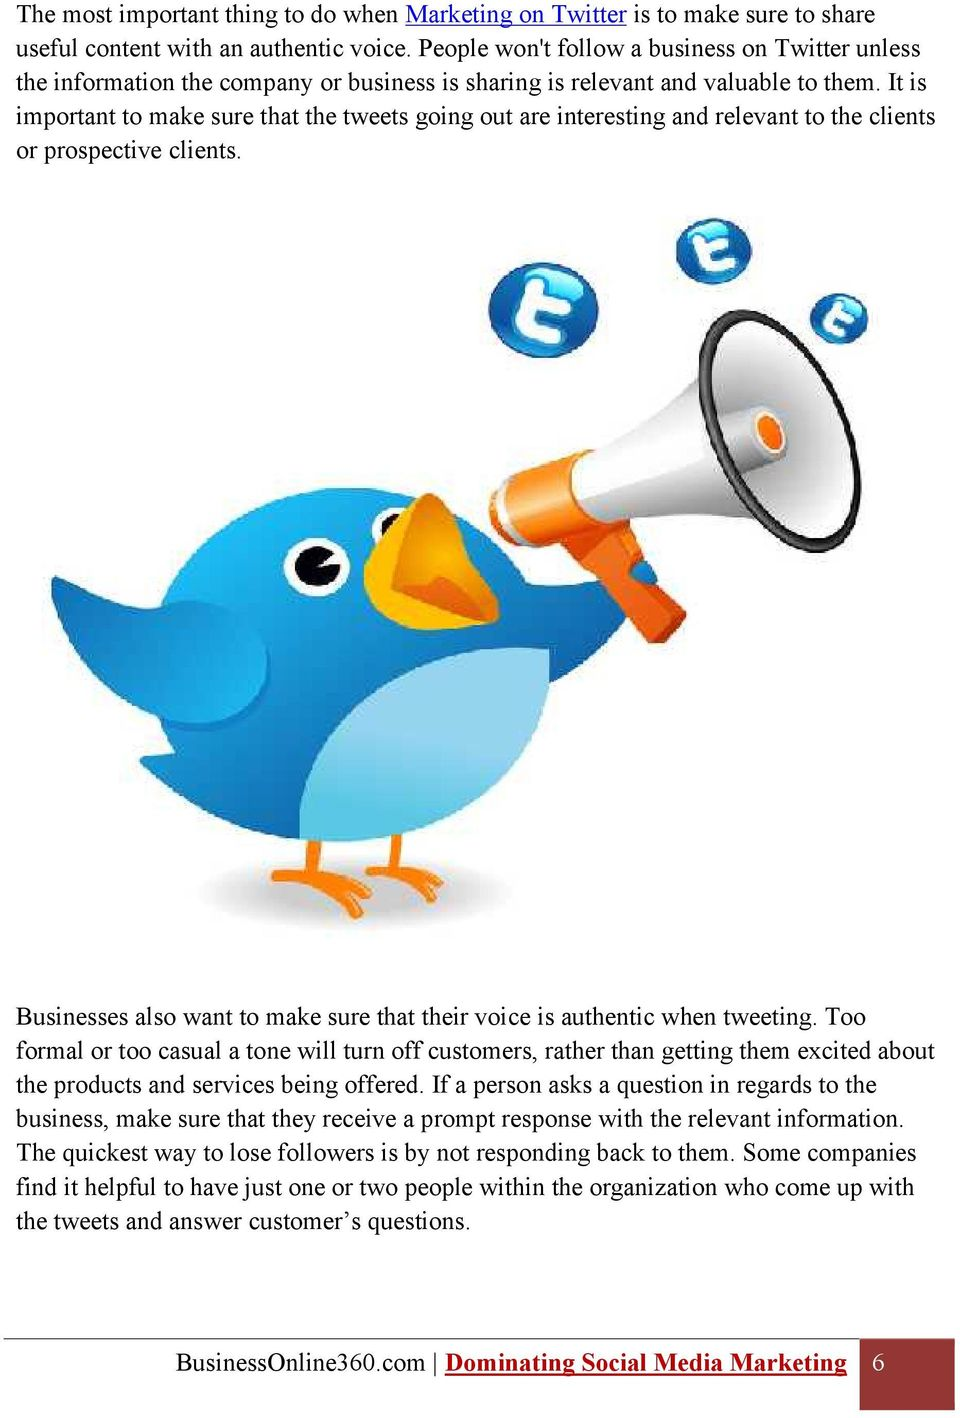 It is important to make sure that the tweets going out are interesting and relevant to the clients or prospective clients.